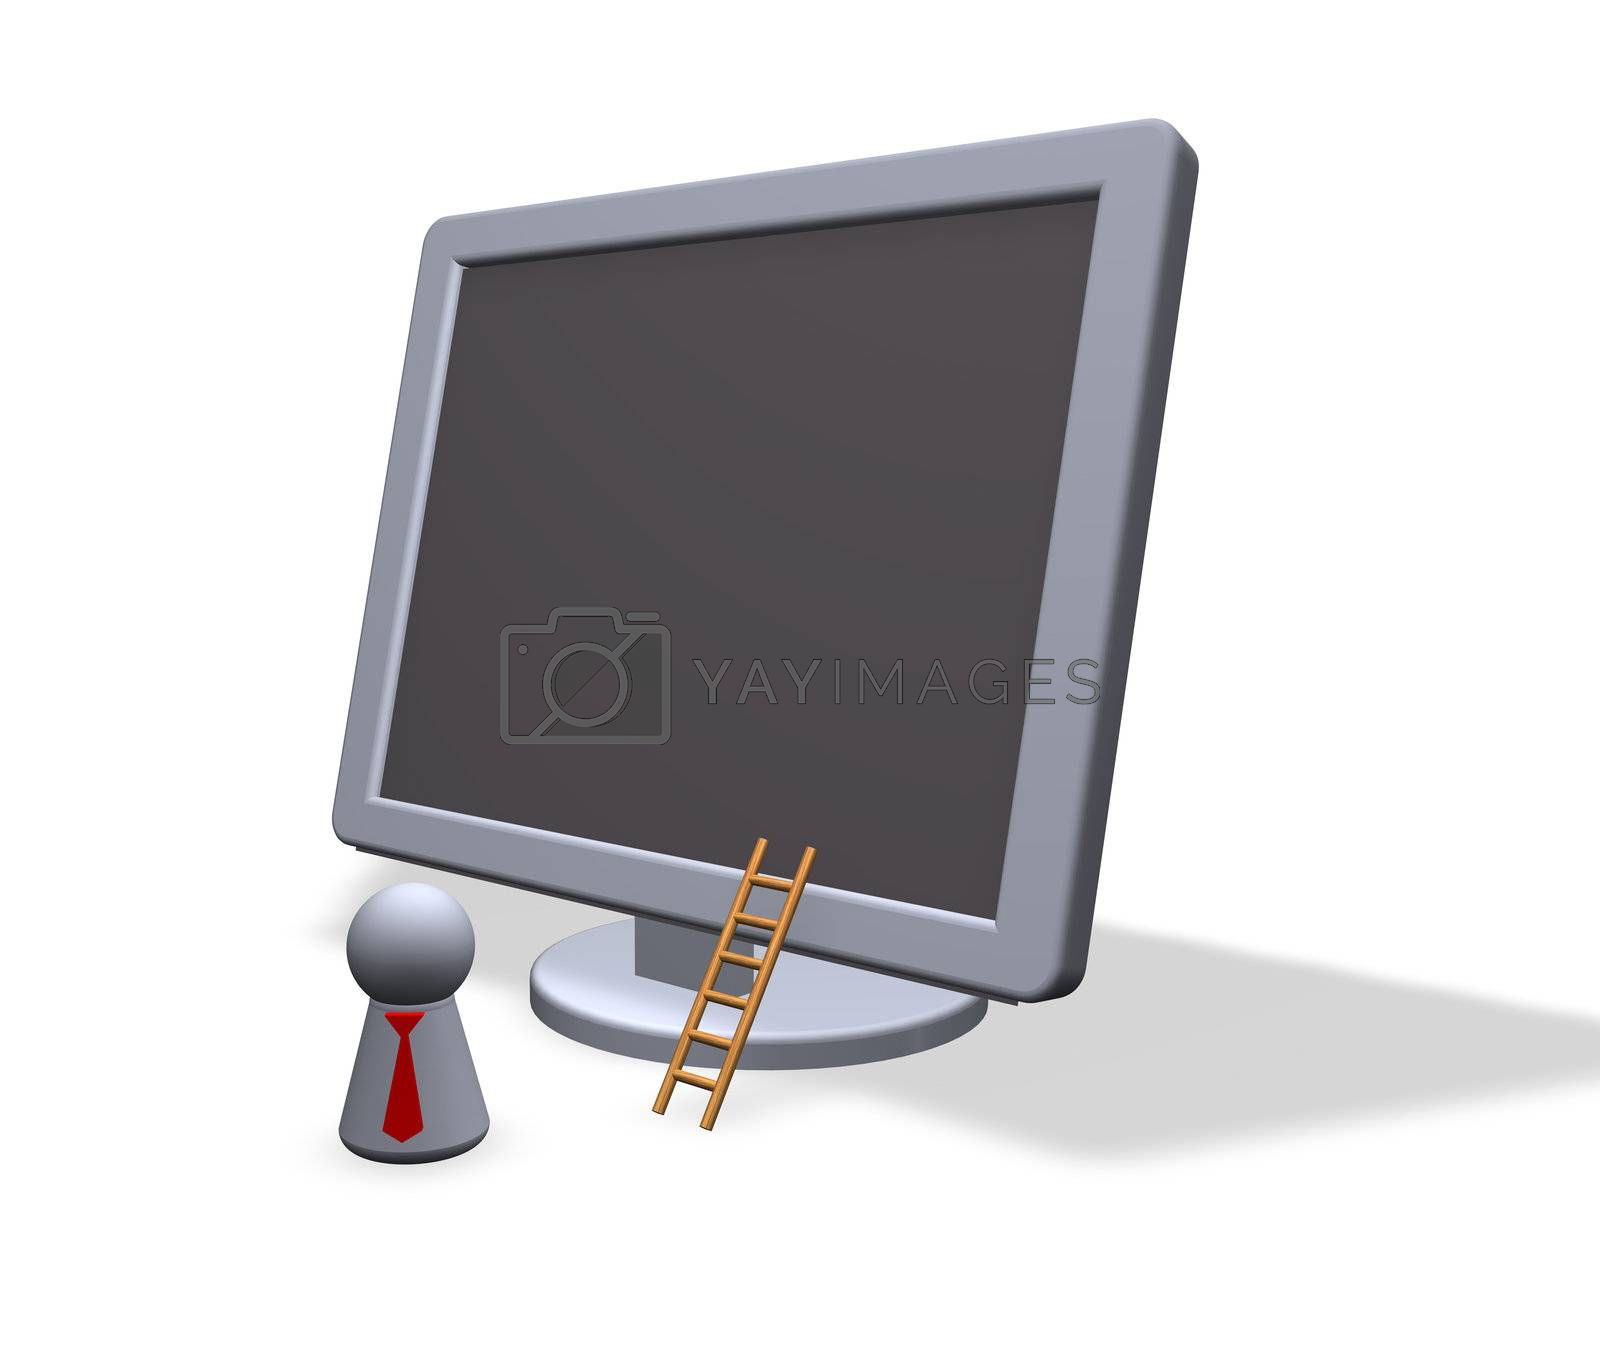 play figure with red tie and tft-monitor